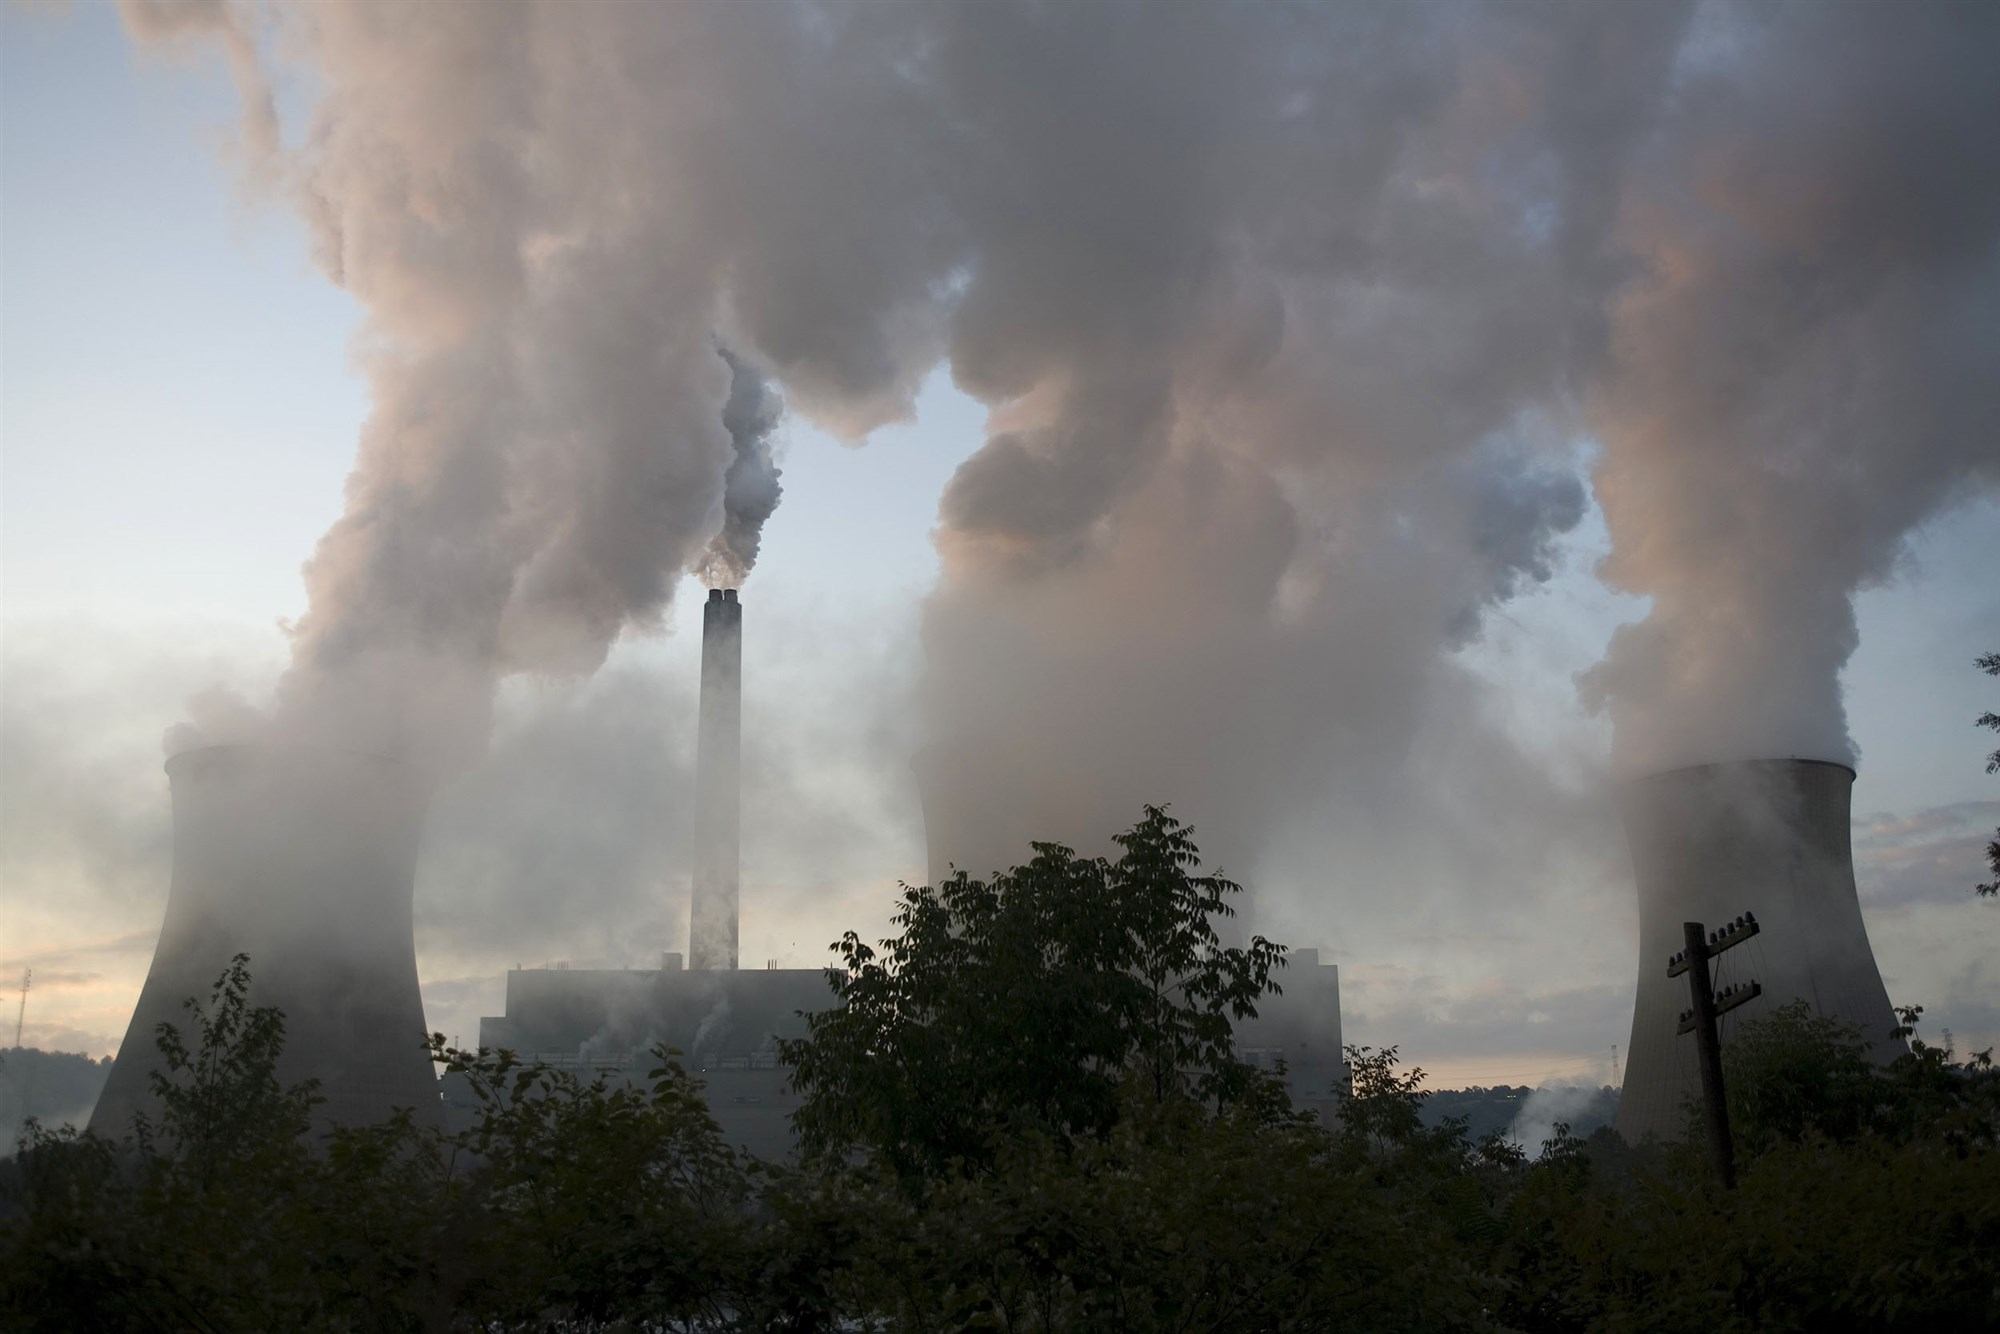 Carbon Dioxide Has Reached Concentration Levels That Are Catastrophic